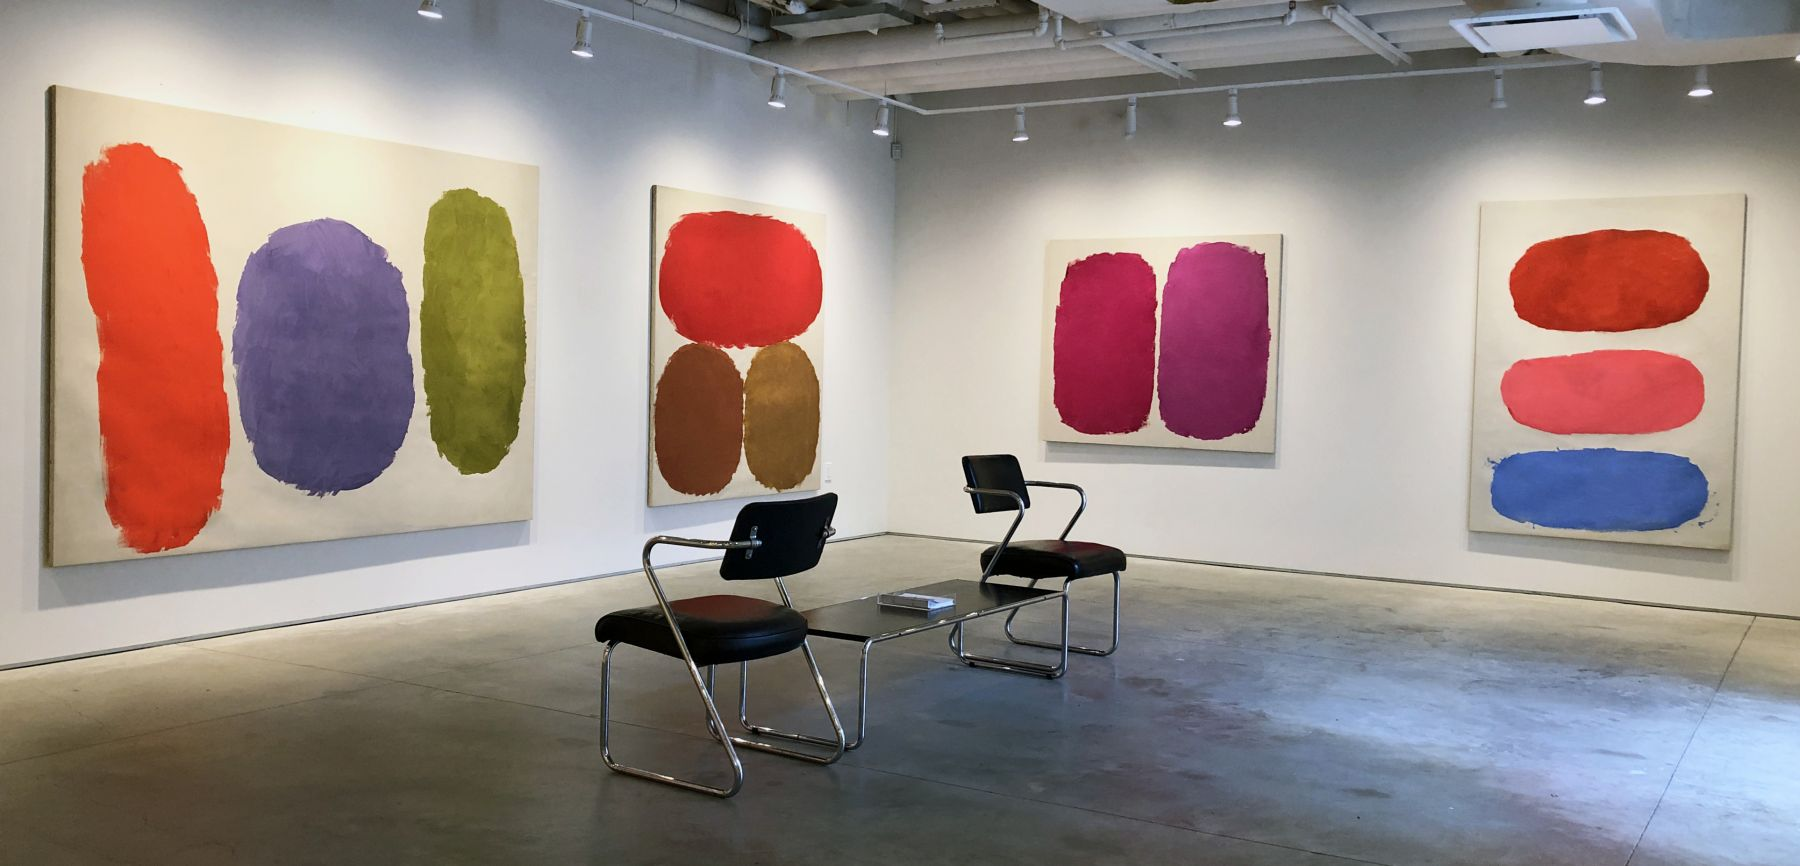 (from left) Untitled, 1958, oil on canvas, 69 x 92 5/8 in., Untitled, 1959, oil on canvas, 69 1/4 x 62 3/4 in., Untitled, 1960, oil on canvas, 51 x 60 in., Untitled, 1959, oil on canvas, 71 1/4 x 50 1/4 in.